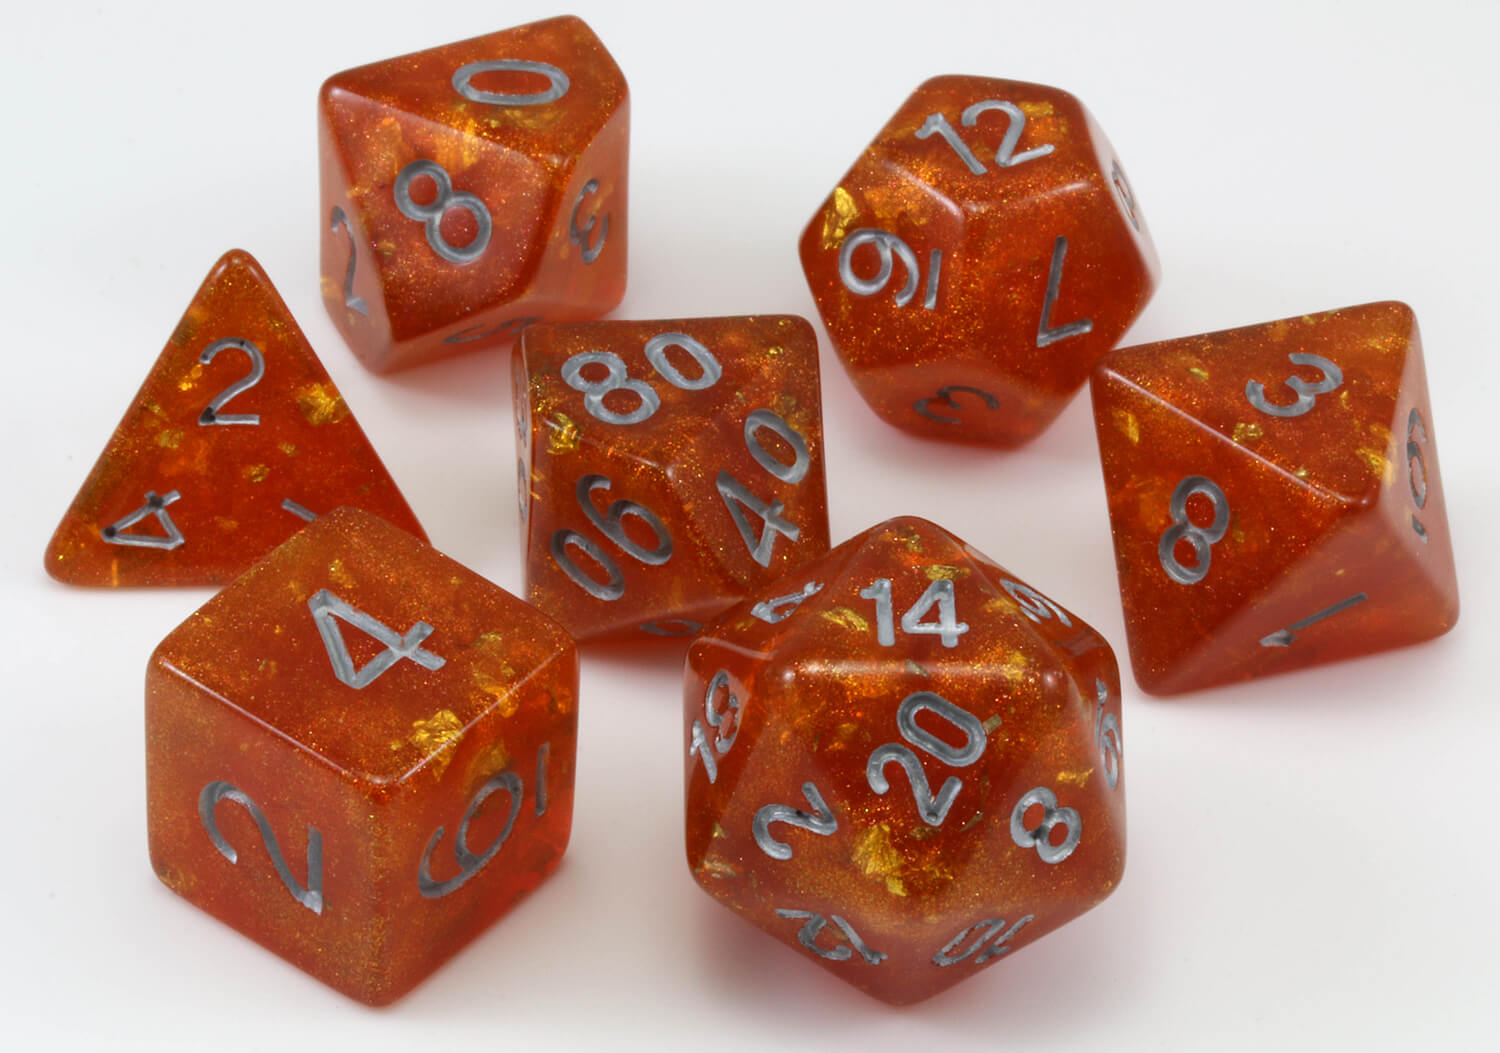 Table Top Gaming Young Metallic Dragon 7 pc dice set dnd dice RPG d/&d Bronze Pearl Effect